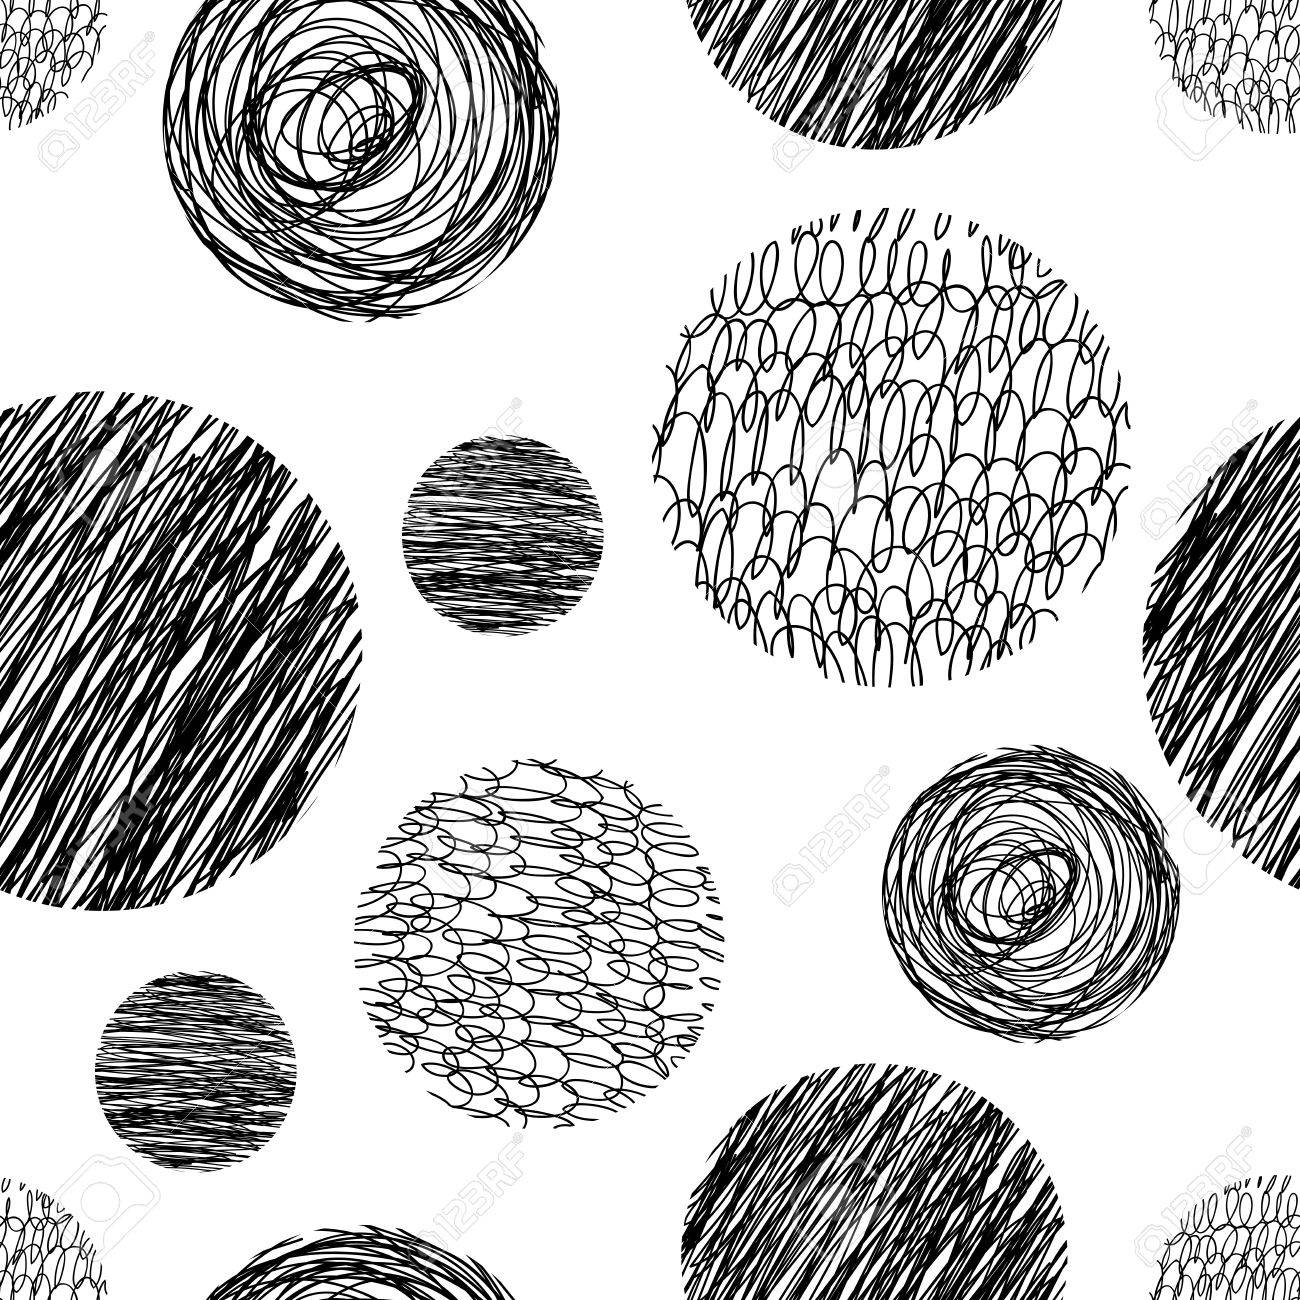 Vector abstract Hand drawn background for design and decoration textile, covers, package, wrapping paper. - 50368956